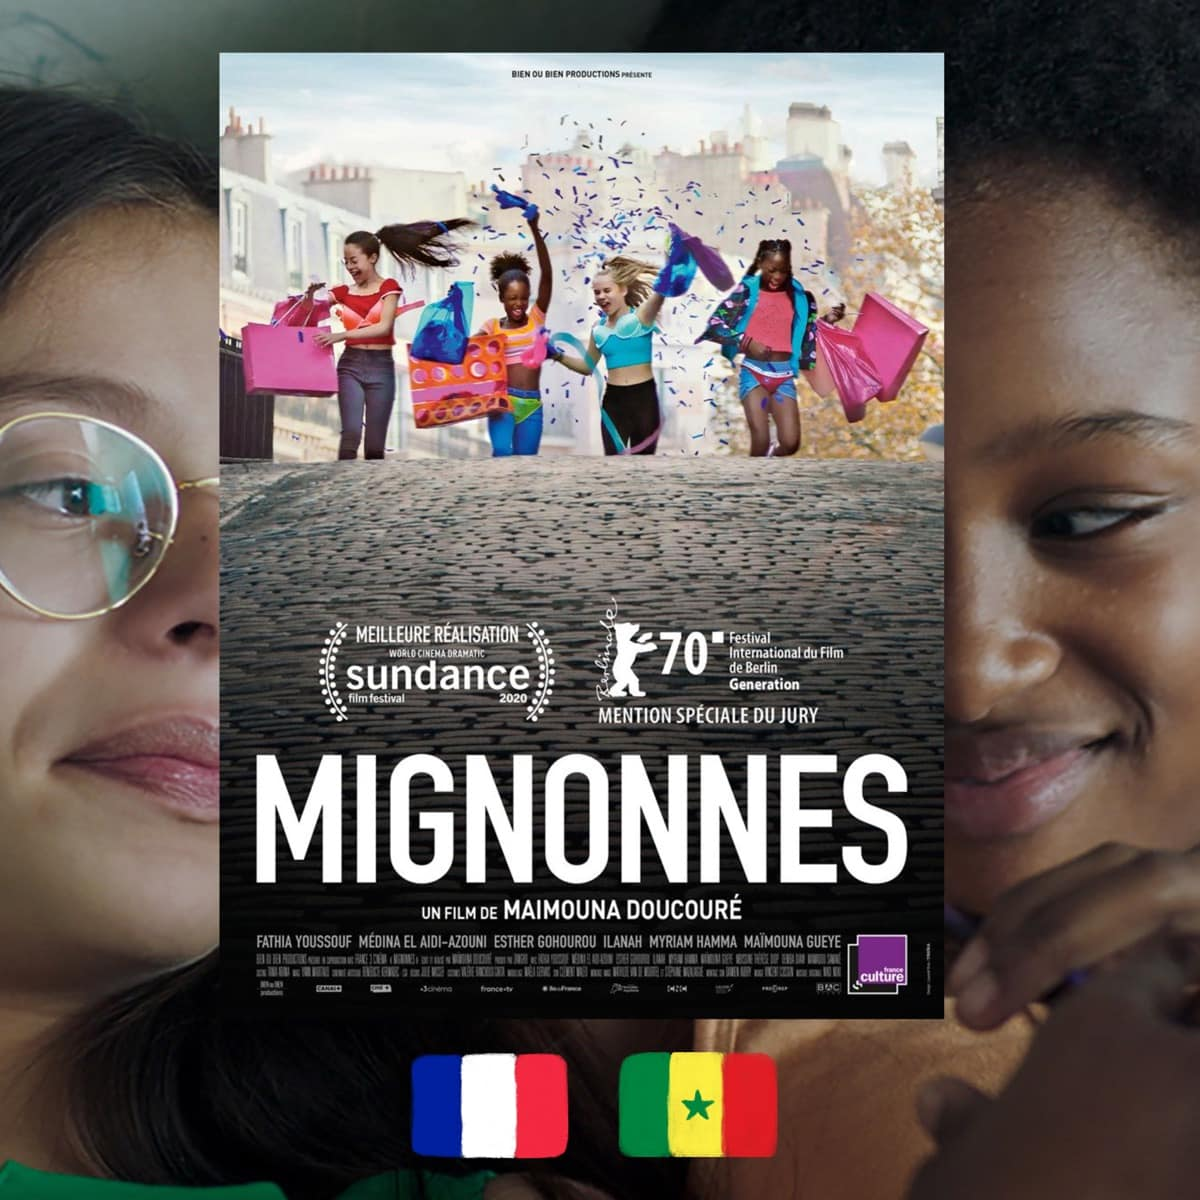 Cuties, Maïmouna Doucouré, movie review